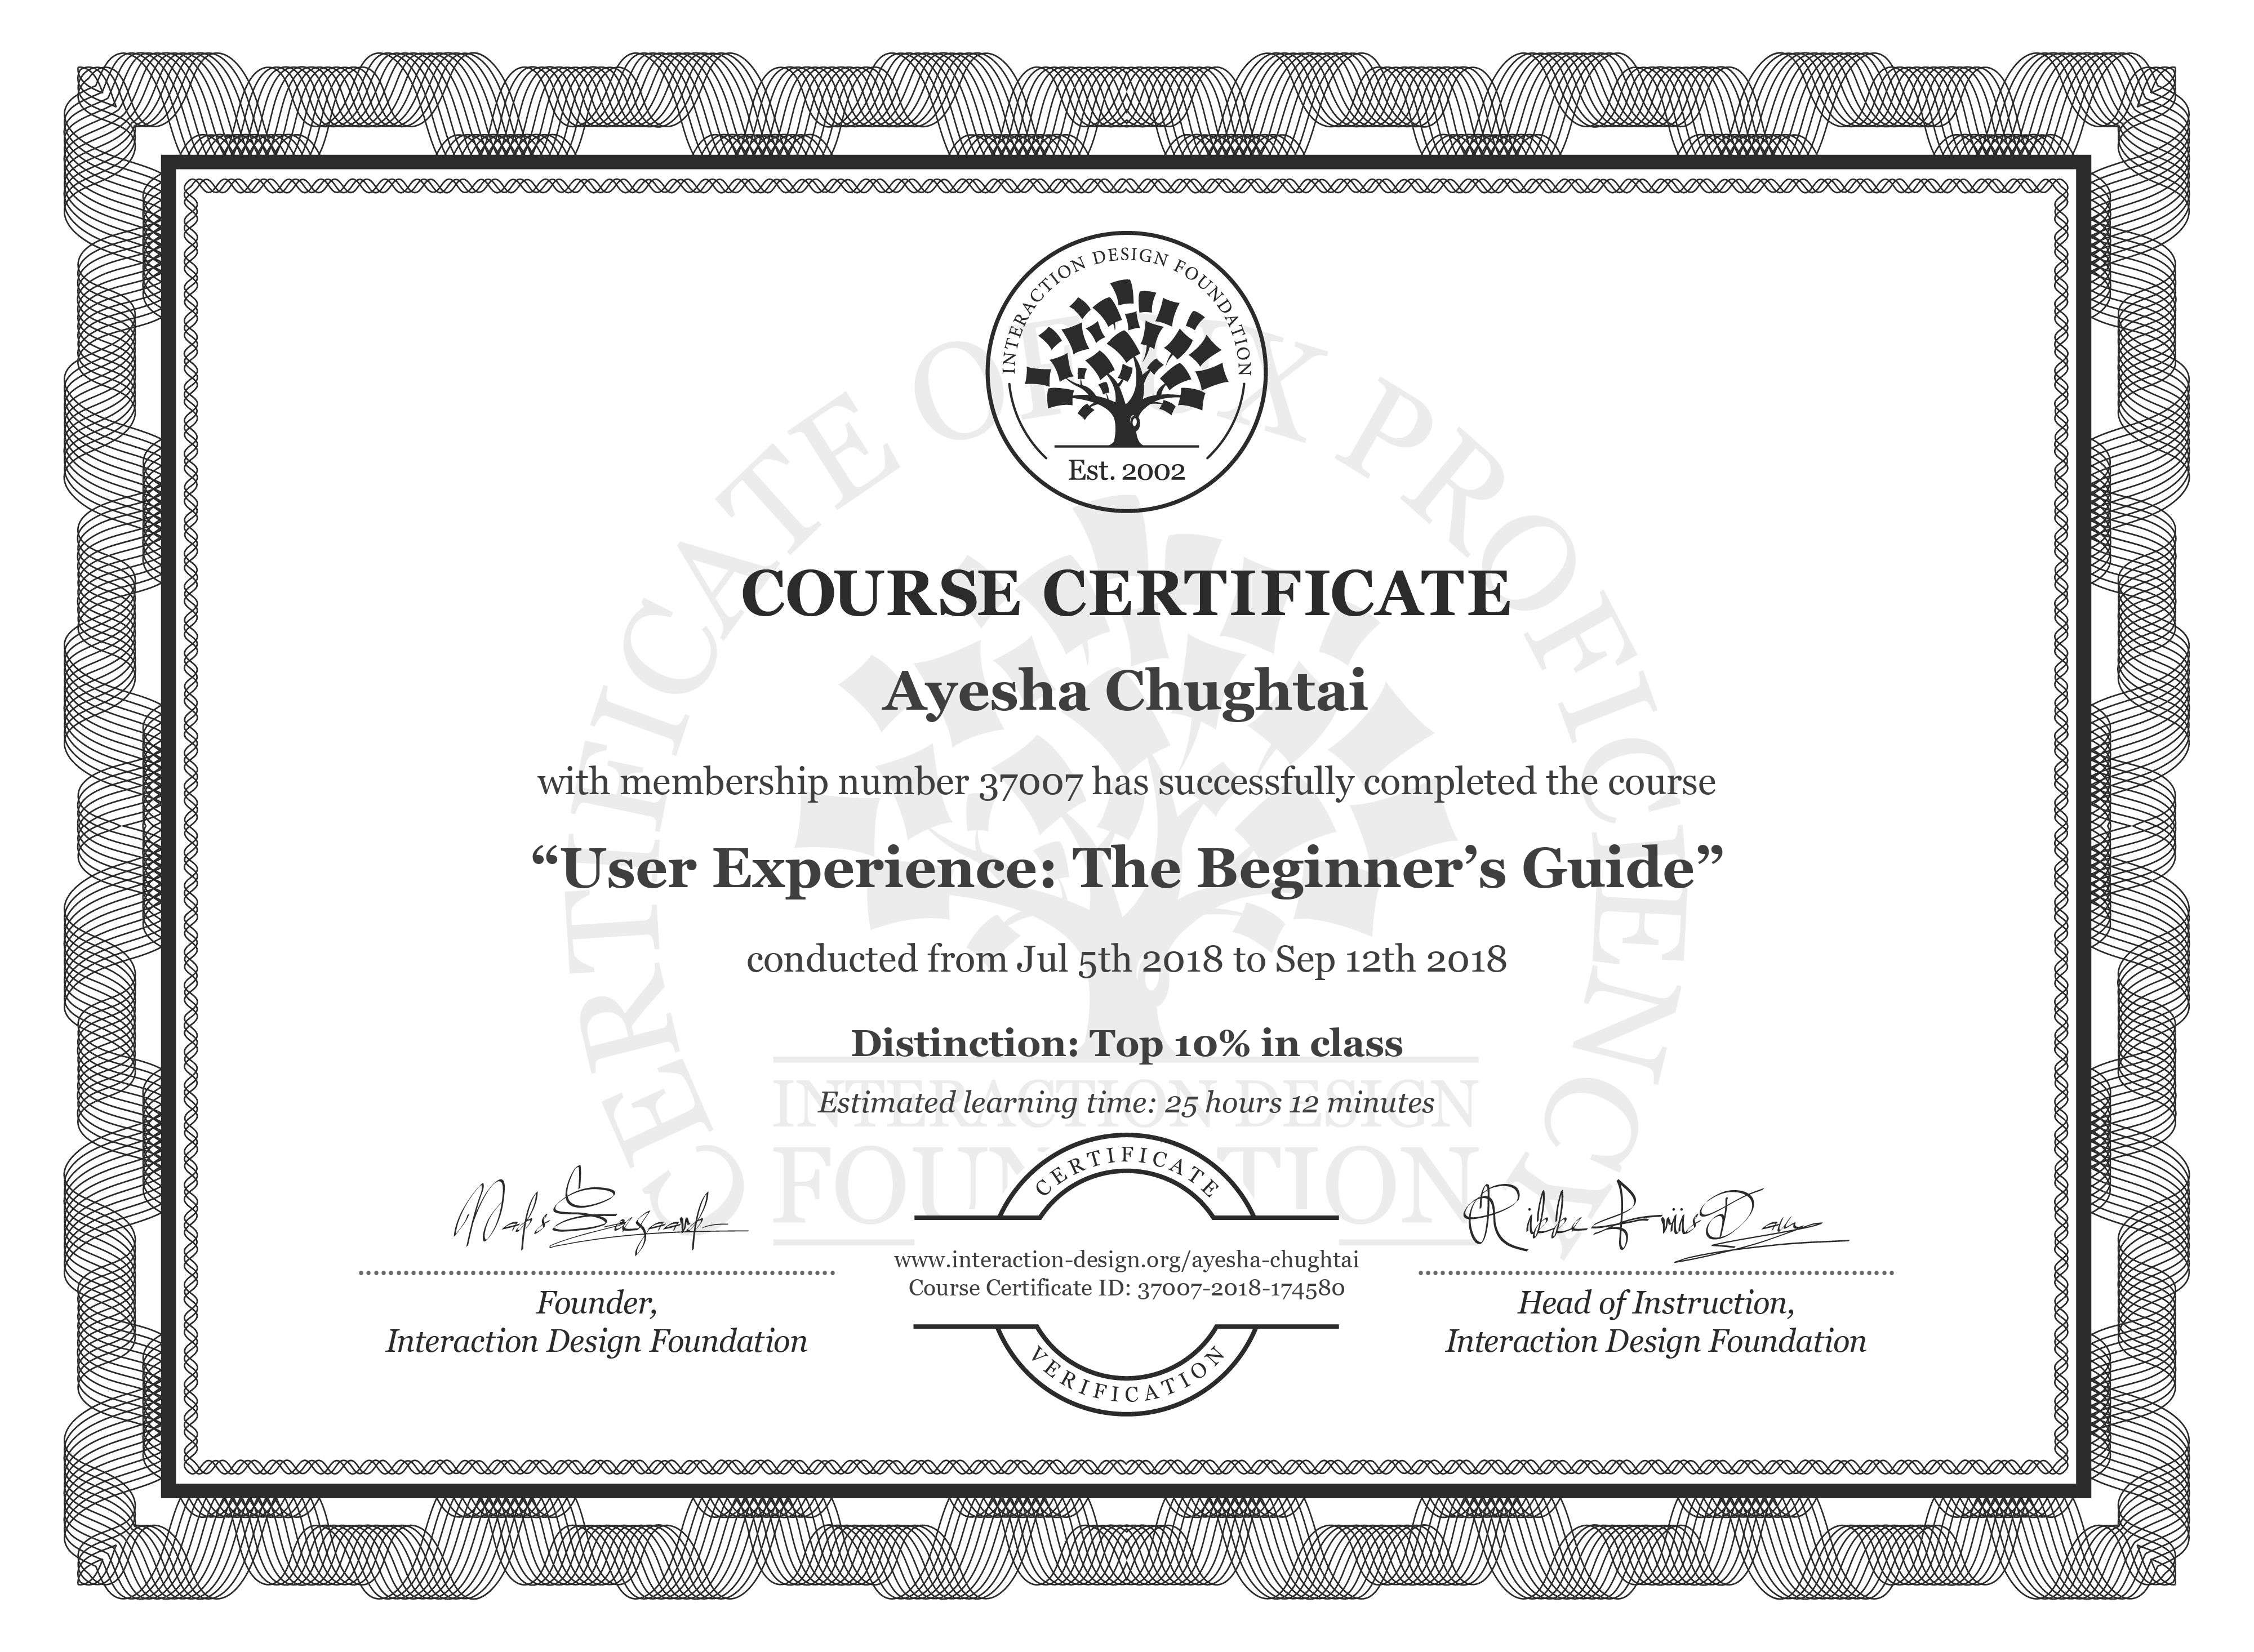 Ayesha Chughtai: Course Certificate - Become a UX Designer from Scratch